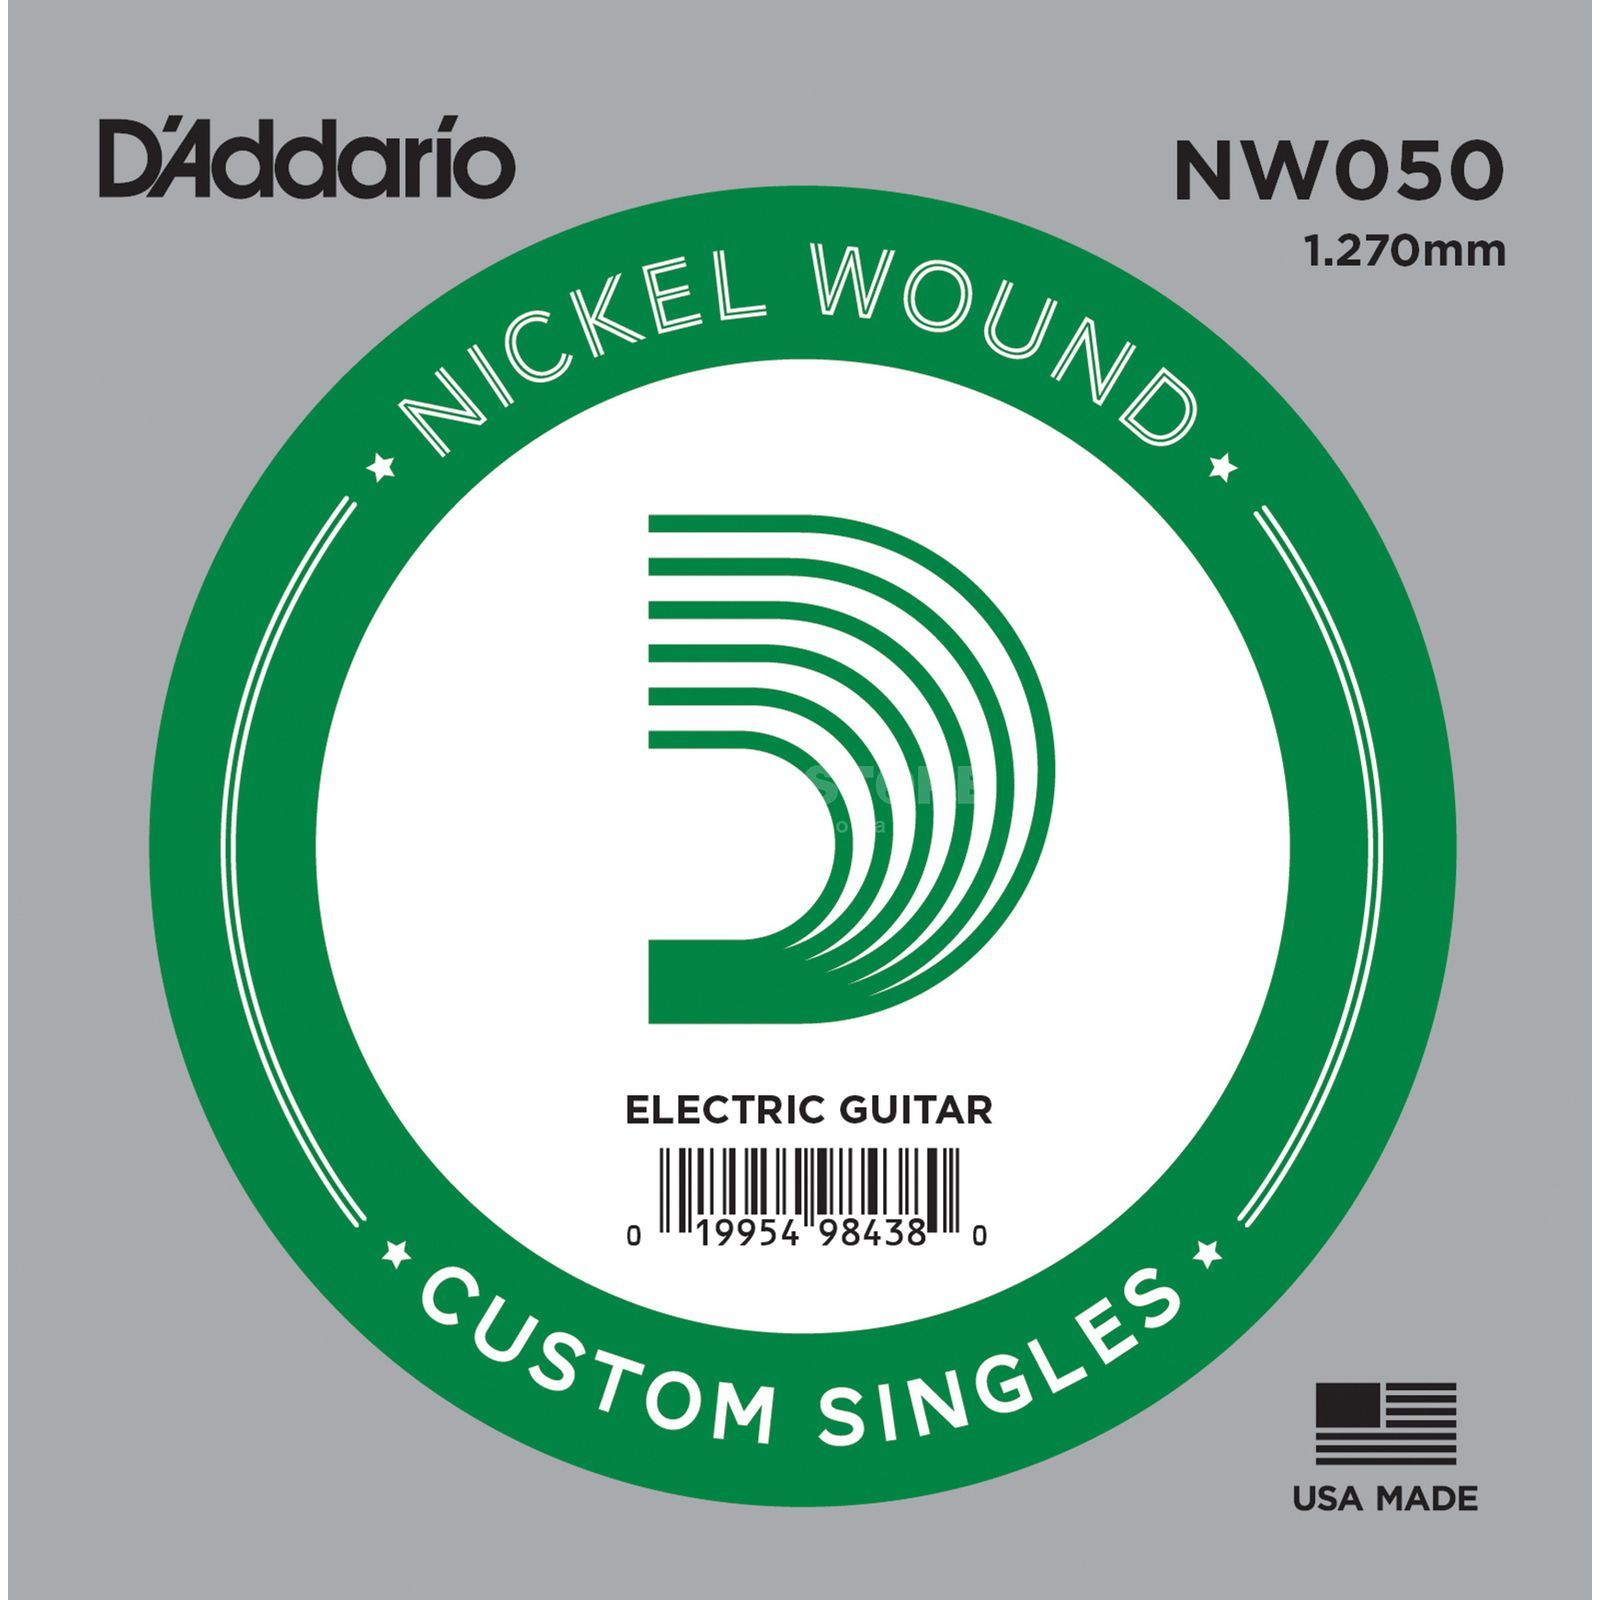 D'Addario Single String NW050 Nickelwound Produktbillede